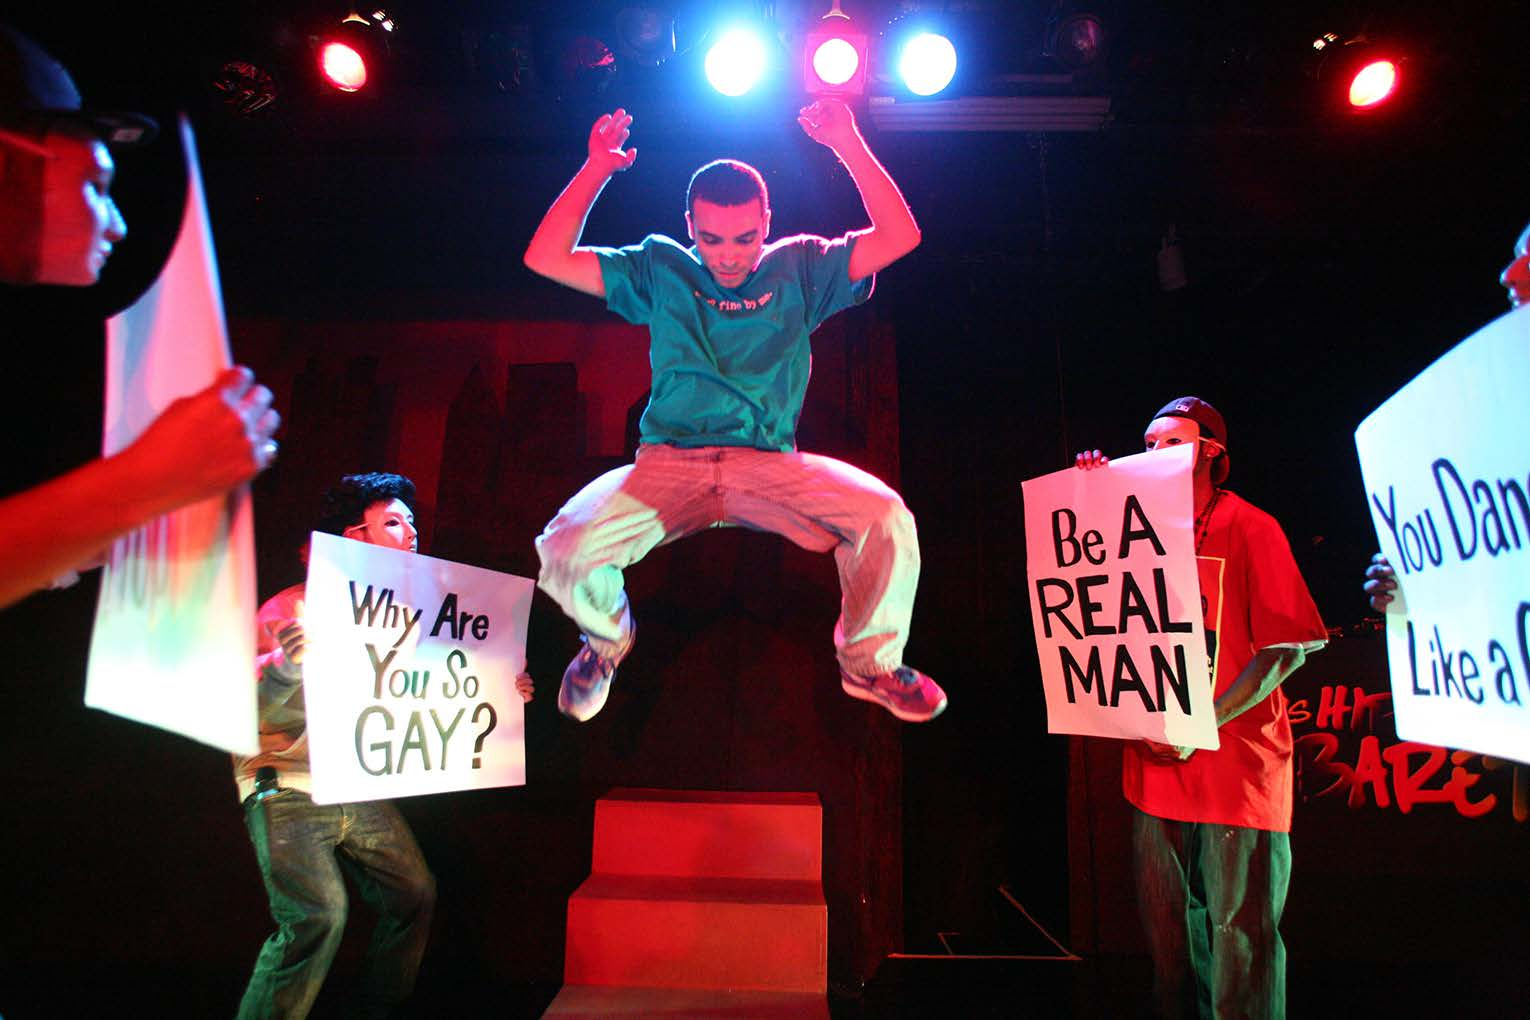 Jesse Vega (center) with ensemble in the All Stars Hip-Hop Cabaret #7, a devised production directed by Dan Friedman and Antoine Joyce at the Castillo Theatre, August 2009. (Photo by Ronald L. Glassman)  Dan Friedman is Artistic Director of the Castillo Theatre in New York City, which he helped to found in 1984. He is also Associate Dean of UX, a free community-based school of continuing development for people of all ages also in New York. He holds a PhD in theatre history from the University of Wisconsin, and has been active in political, experimental, and community-based theatre since 1969. dfriedman@allstars.org